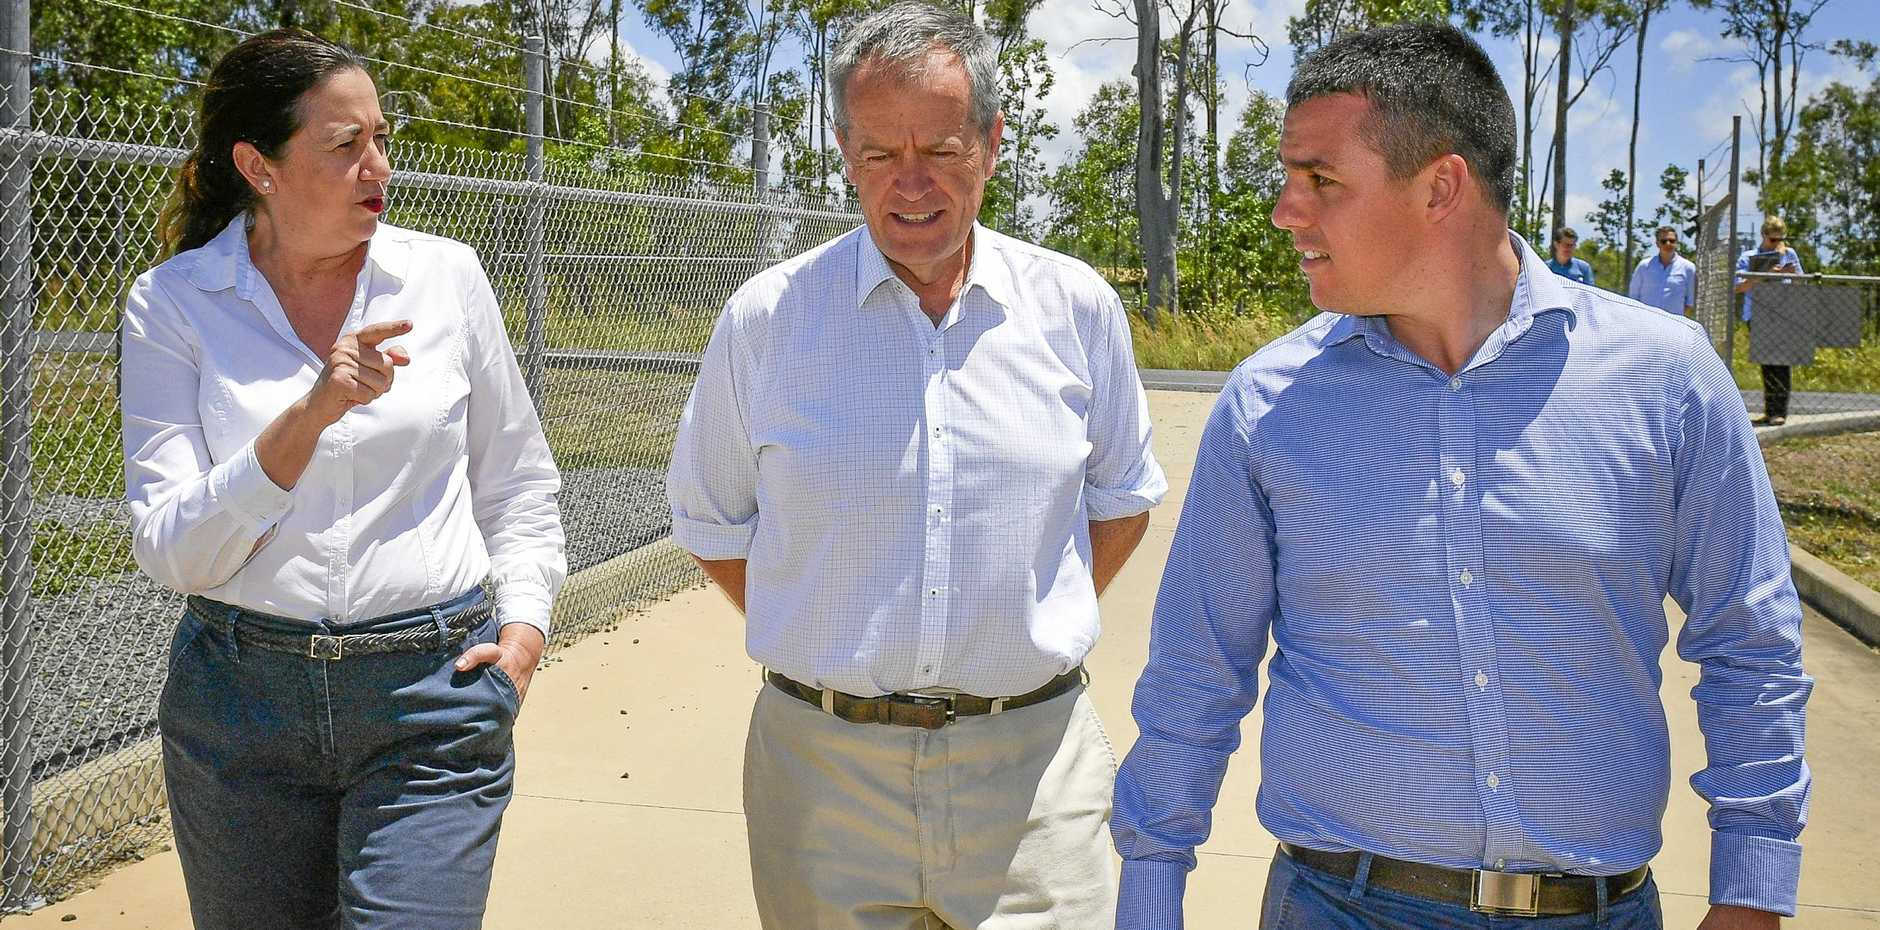 ROAD UPGRADE: If Premier Annastacia Palaszczuk (left) contributes $15million, and Labor lead by Opposition Leader Bill Shorten wins the federal election, Labor's candidate for Flynn Zac Beers will be able to deliver a much needed upgrade to Lawrie St in Gracemere.